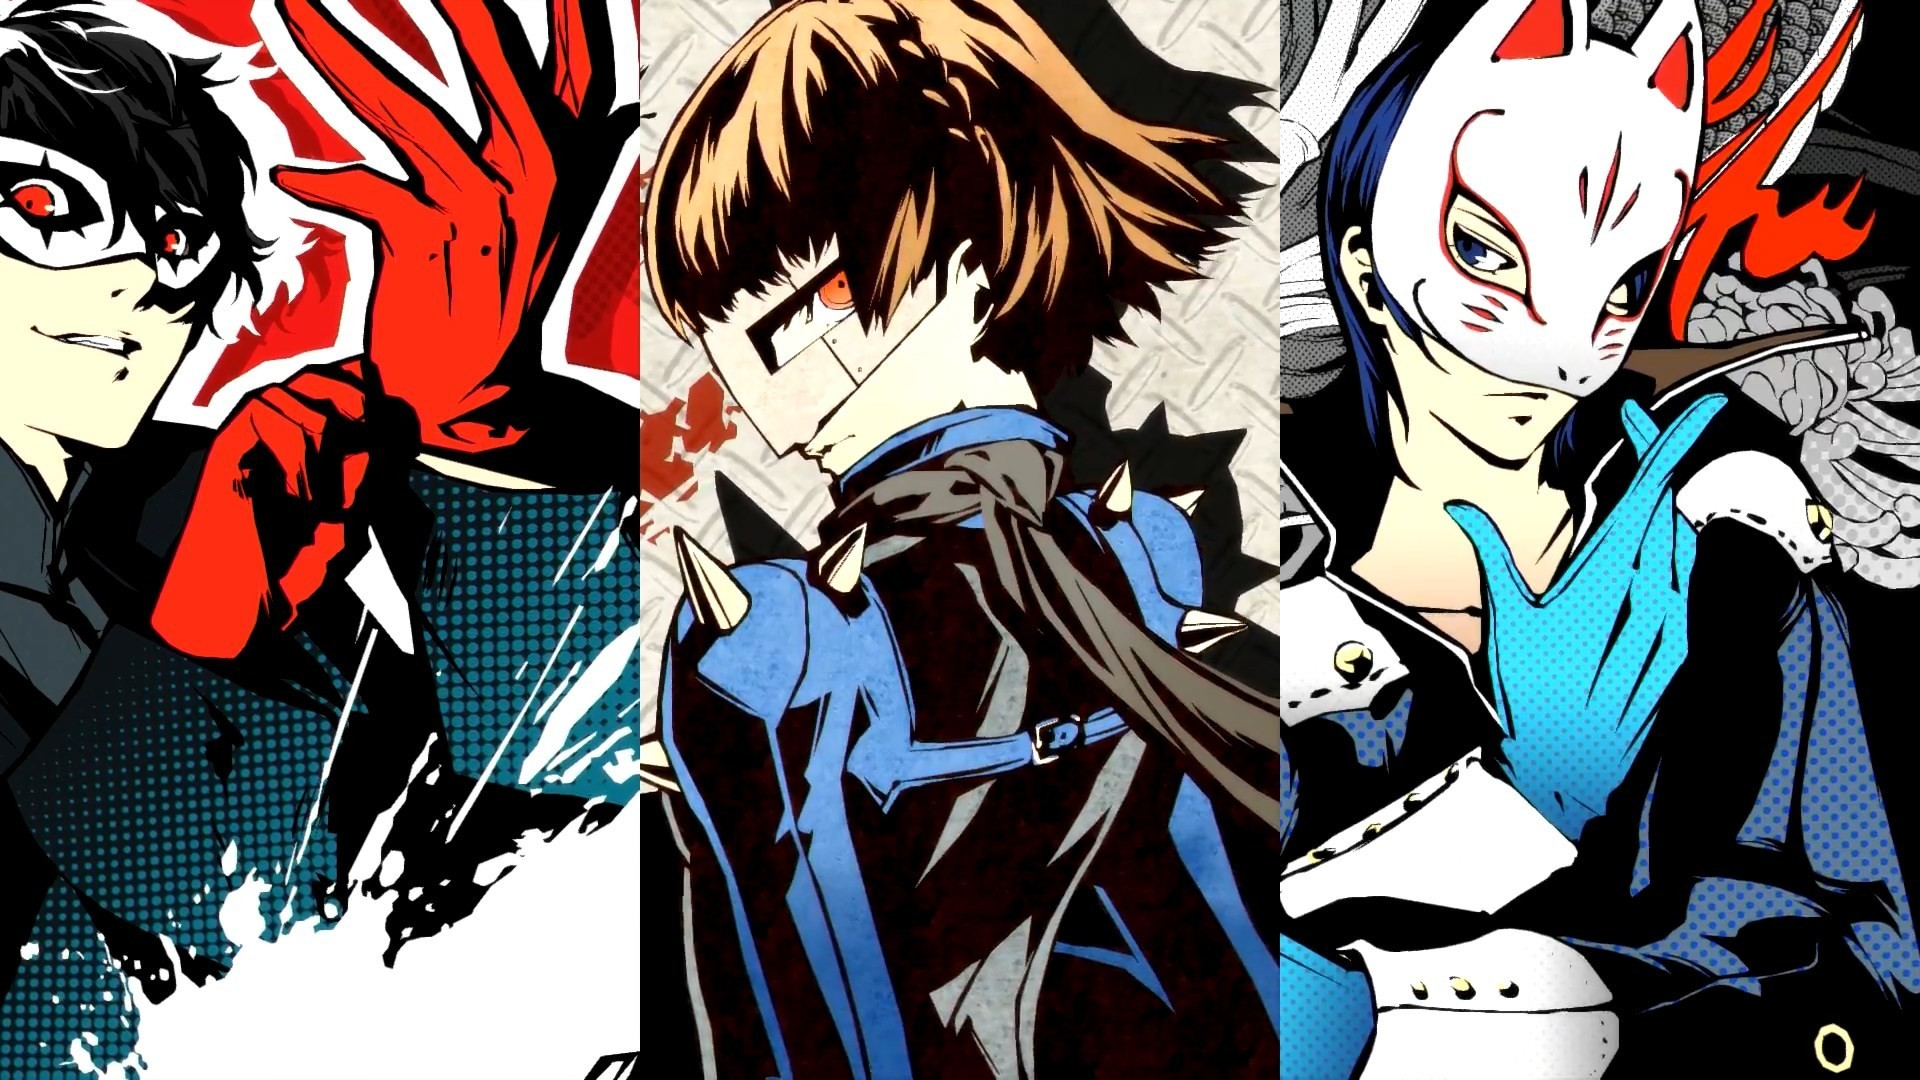 Persona-5-All-Out-Attack-Trailers.jpg (1920×1080)   How to Art   Pinterest    Artwork, Manga and Anime